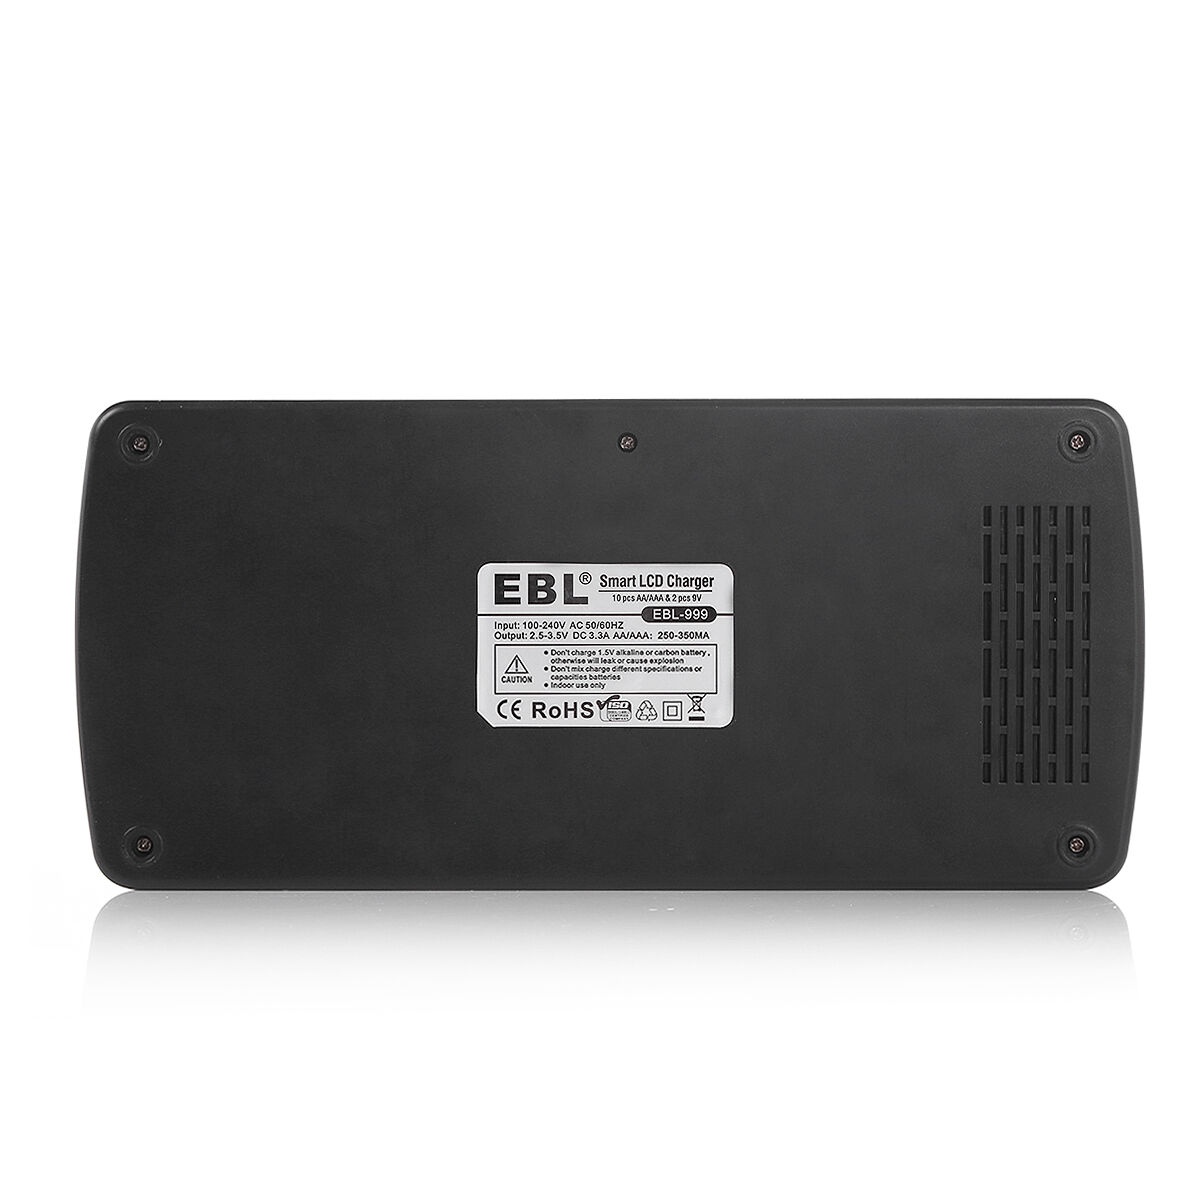 EBL 12Bay LCD Rapid Charger For AA AAA 9V NiMH NiCD Multi Rechargeable Battery